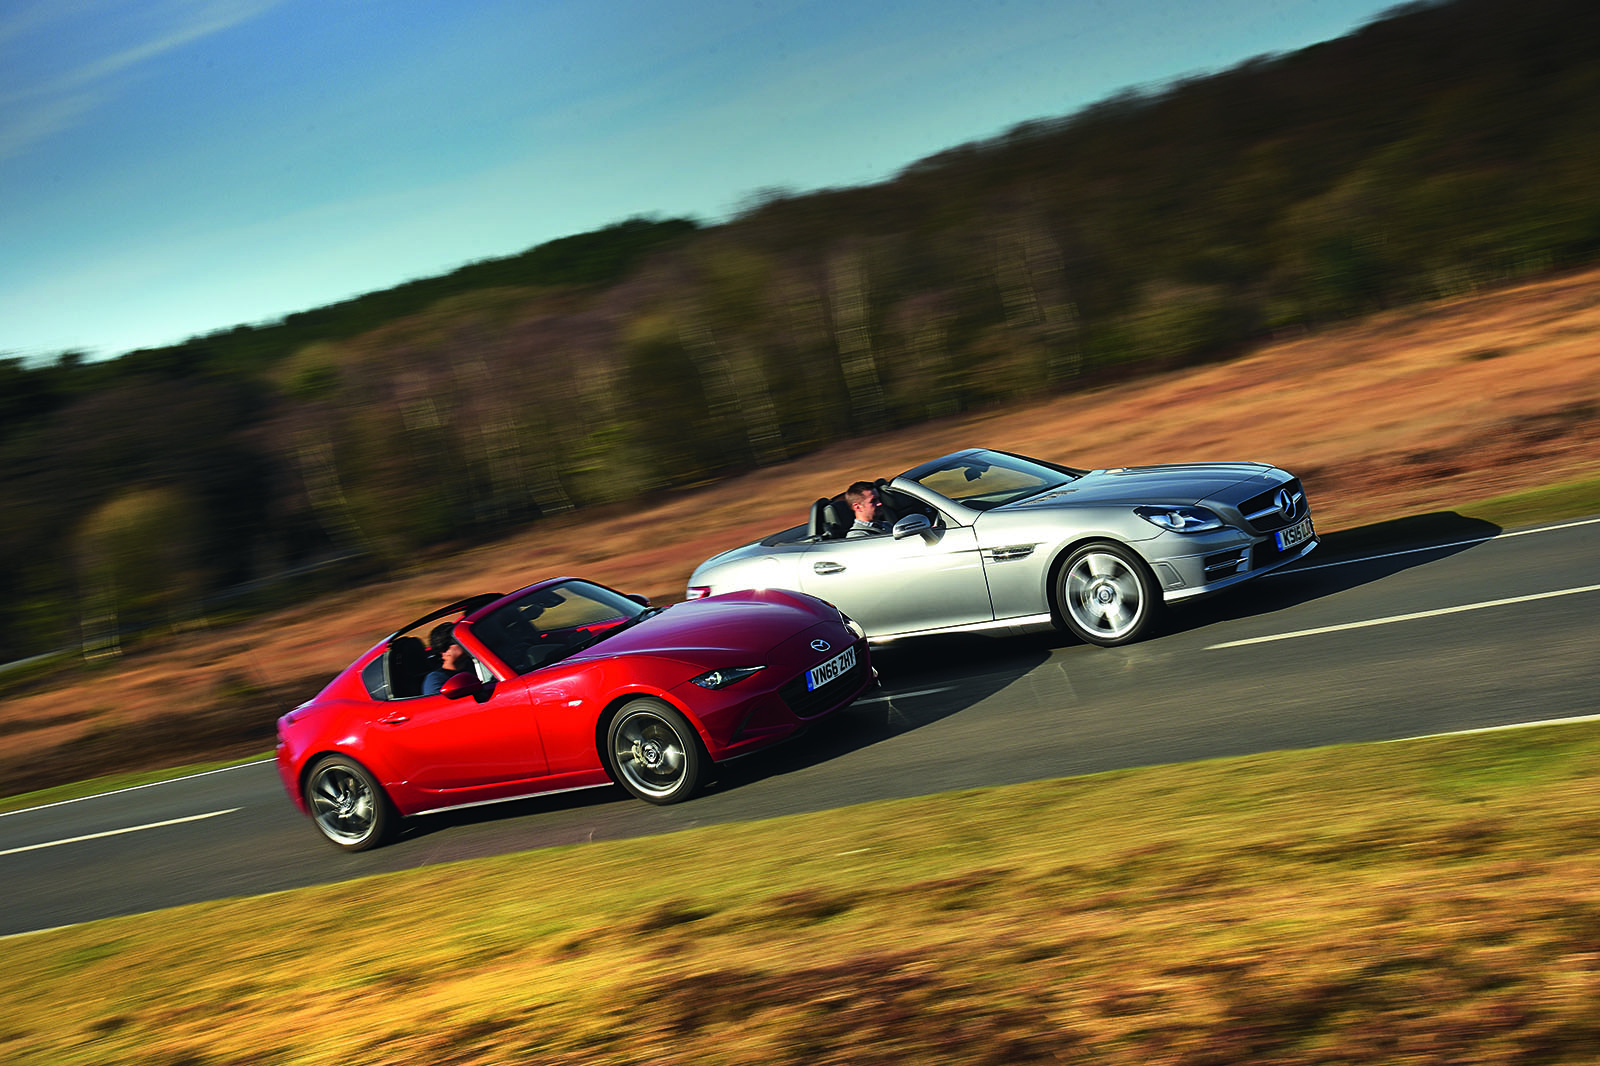 Mazda MX-5 RF vs used Mercedes-Benz SLK - which is best? | Autocar